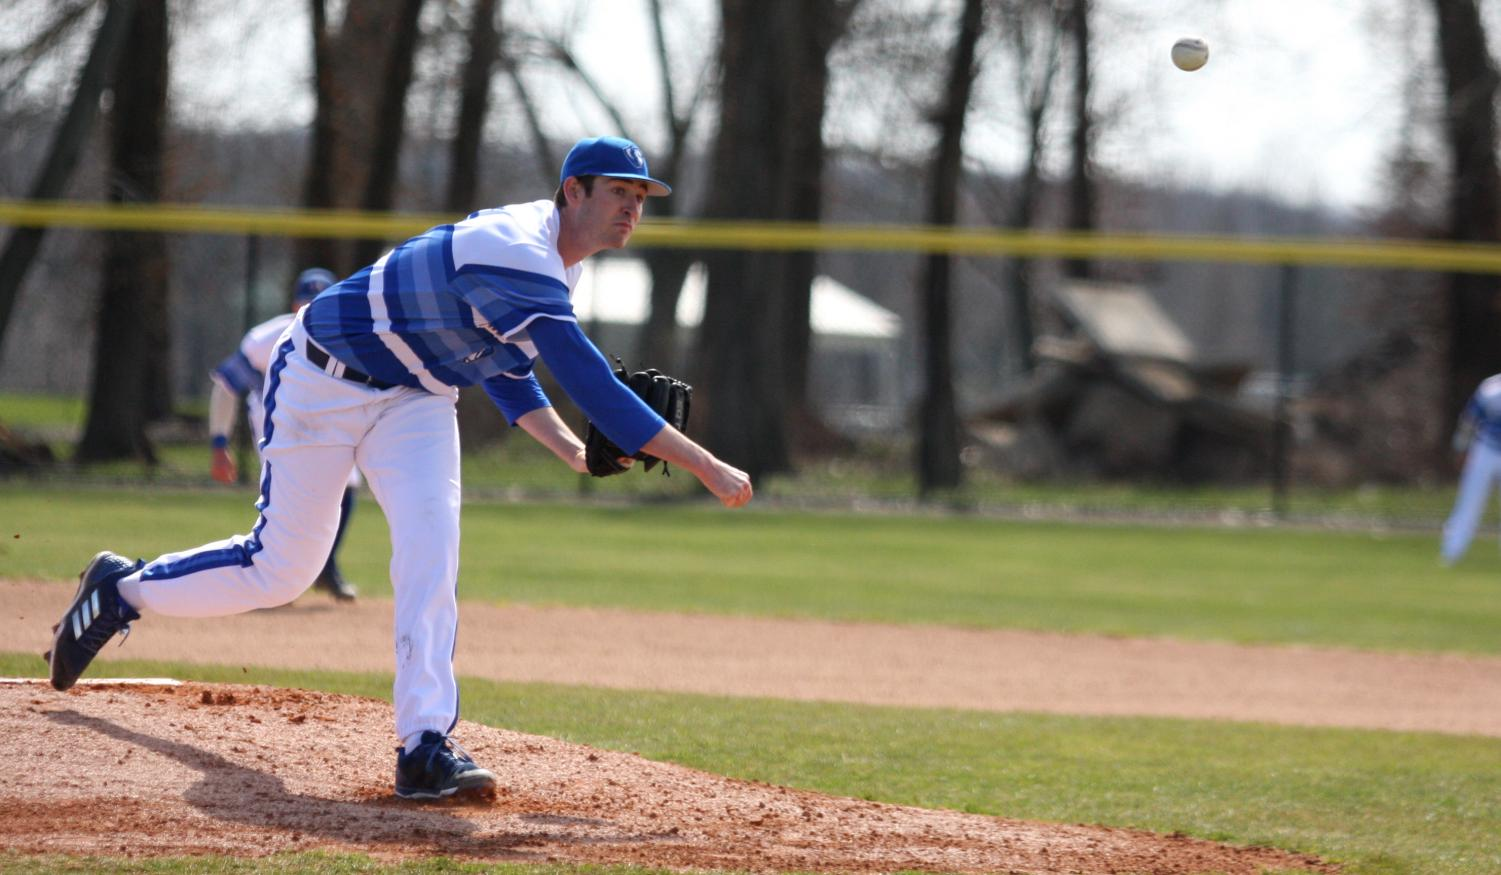 Eastern junior Tyler Jones throws a pitch in the Panthers 9-3 loss to Tennessee Tech on March 30 at Coaches Field. Jones threw six innings and gave up three runs while striking out four batters.